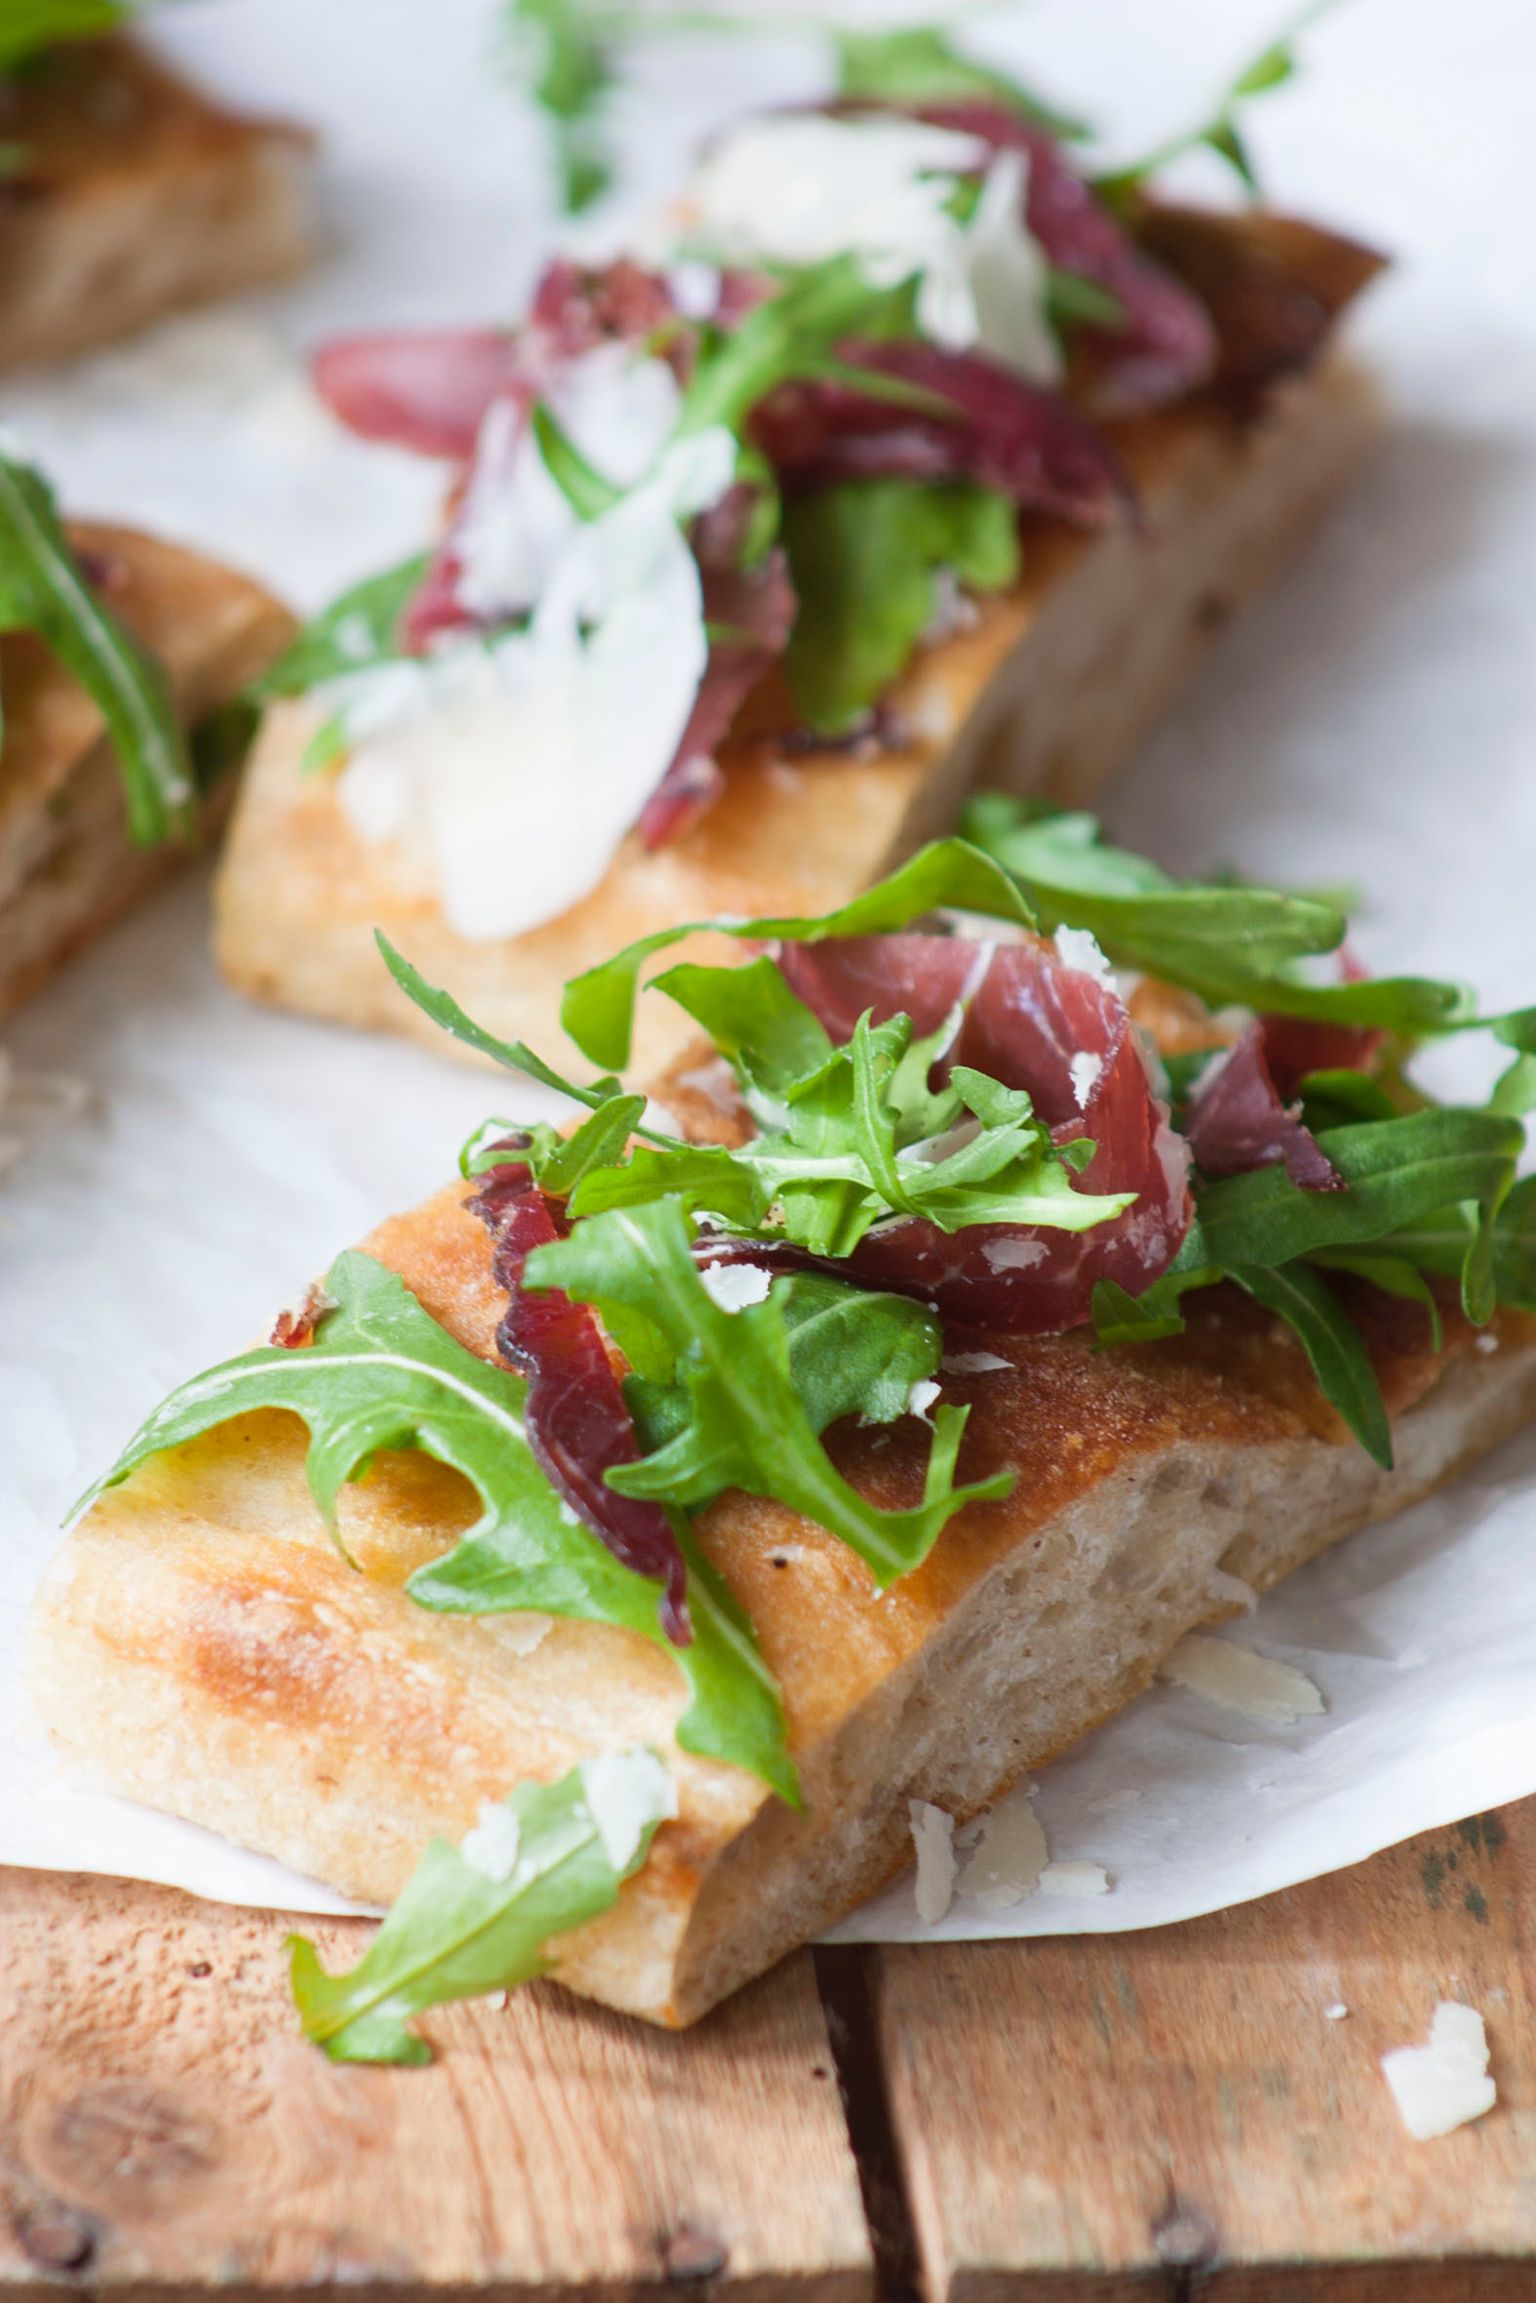 Bresaola (dried beef), Parmesan and rucola. Authentic Italian flavour!